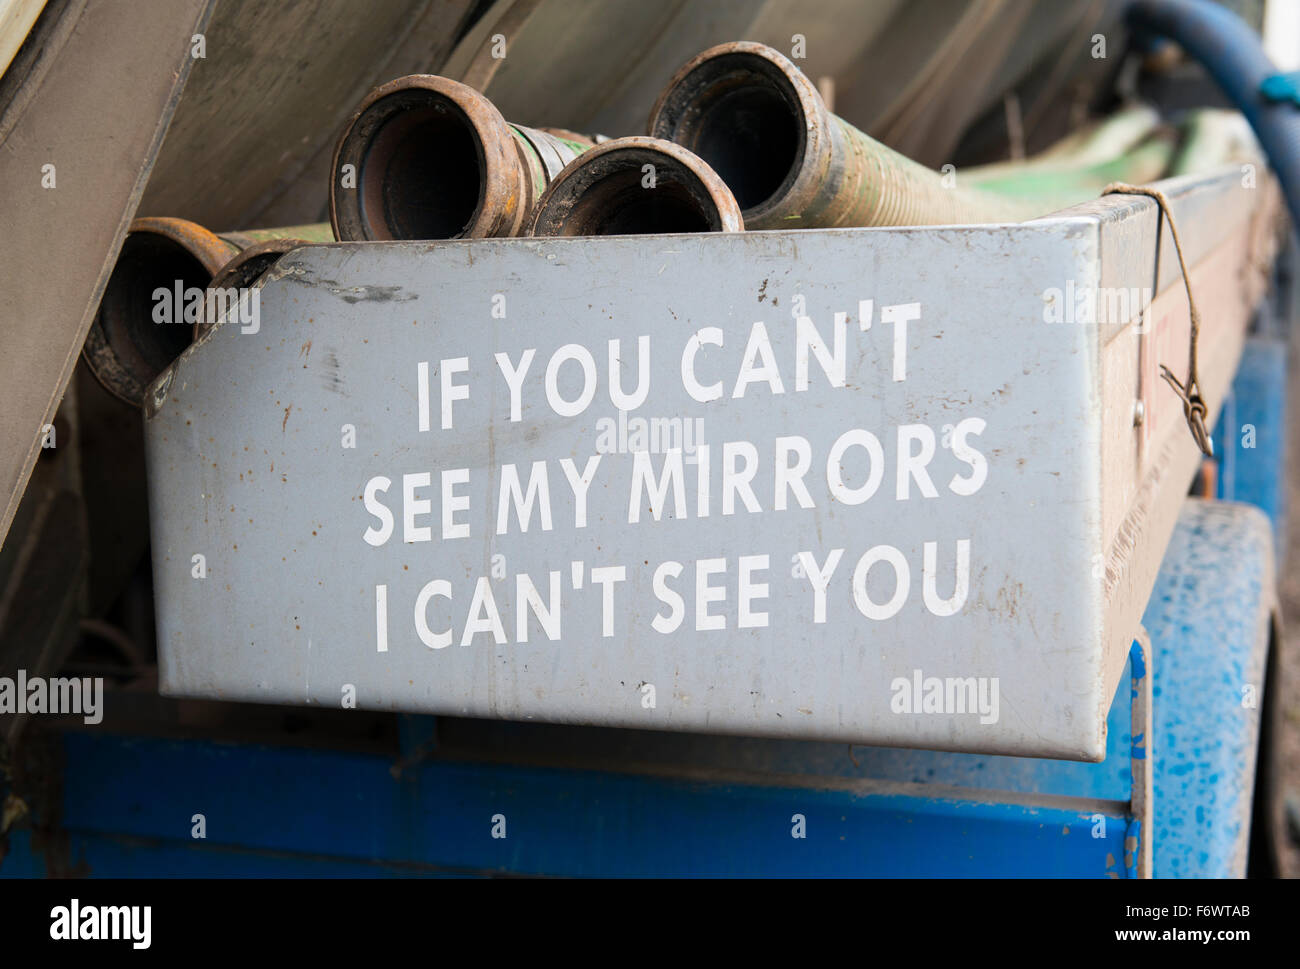 'If you can't see my mirrors I can't see you' road safety warning sign on the back of a lorry. - Stock Image